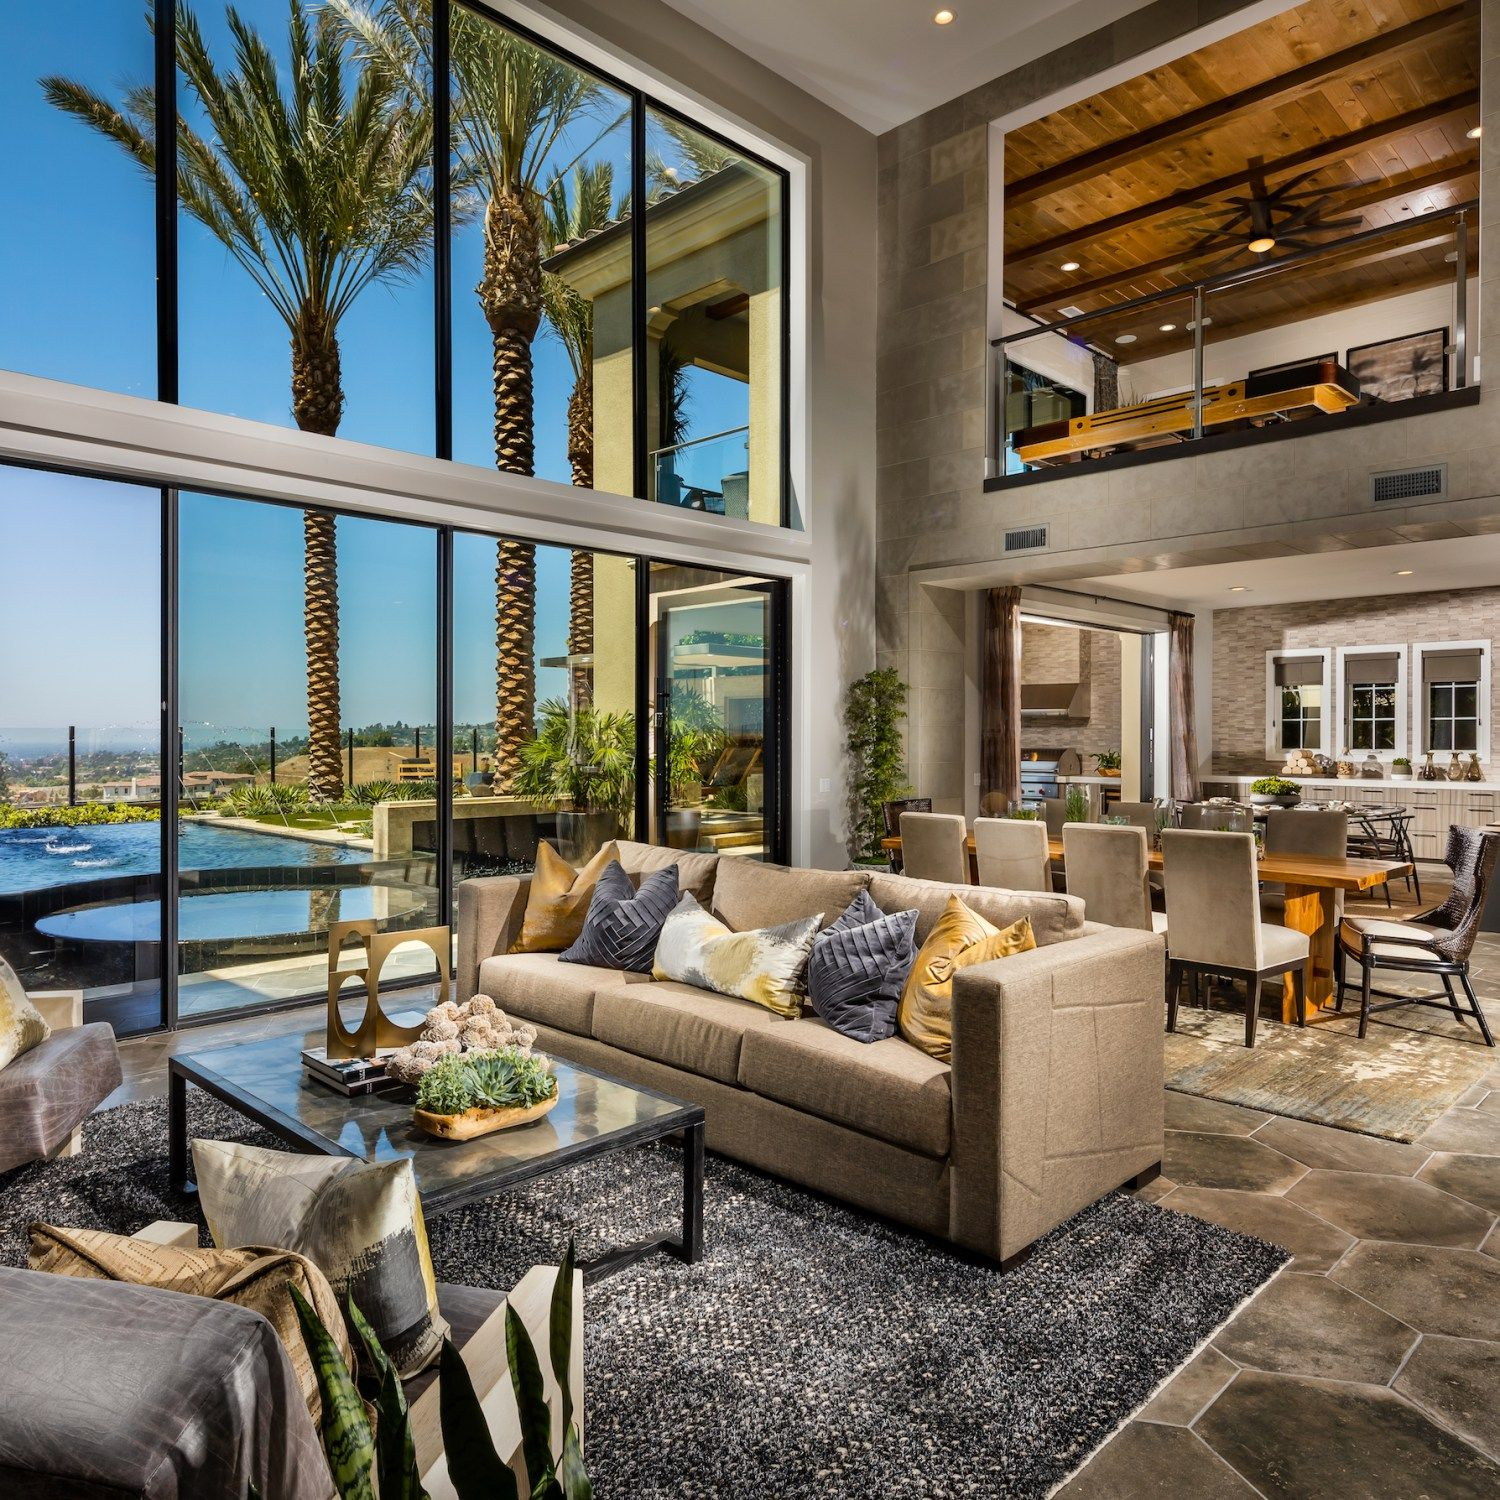 Luxury Homes In Los Angeles Area California: A Luxury Lifestyle: 3 Architectural Mainstays Of